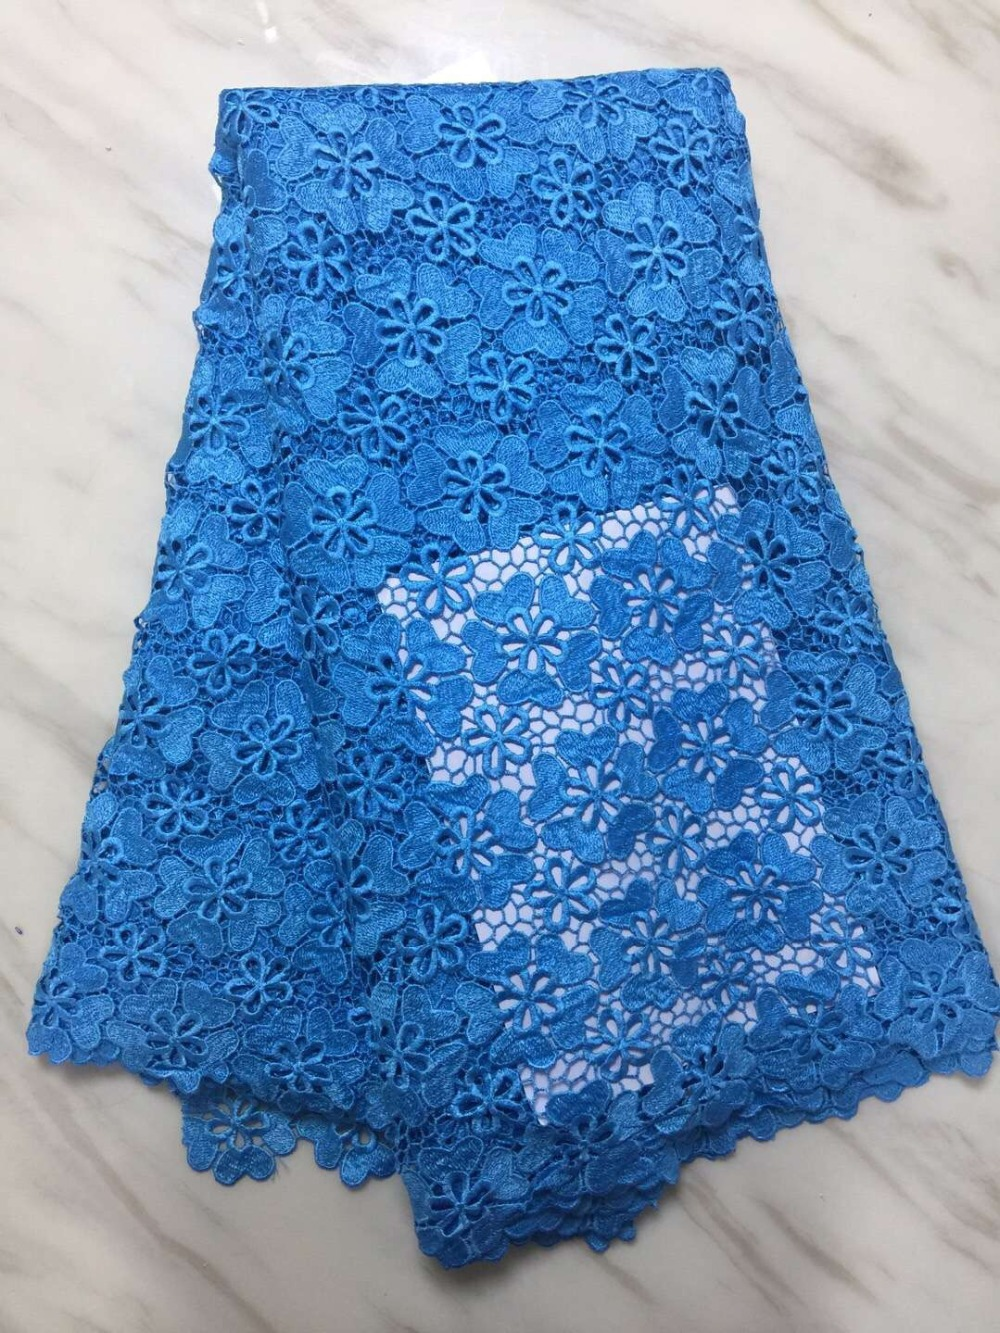 African lace fabric 5yds/pce dhl water soluble turquoise blue fabrics women party event luxury dresses 2019 new high qualityAfrican lace fabric 5yds/pce dhl water soluble turquoise blue fabrics women party event luxury dresses 2019 new high quality